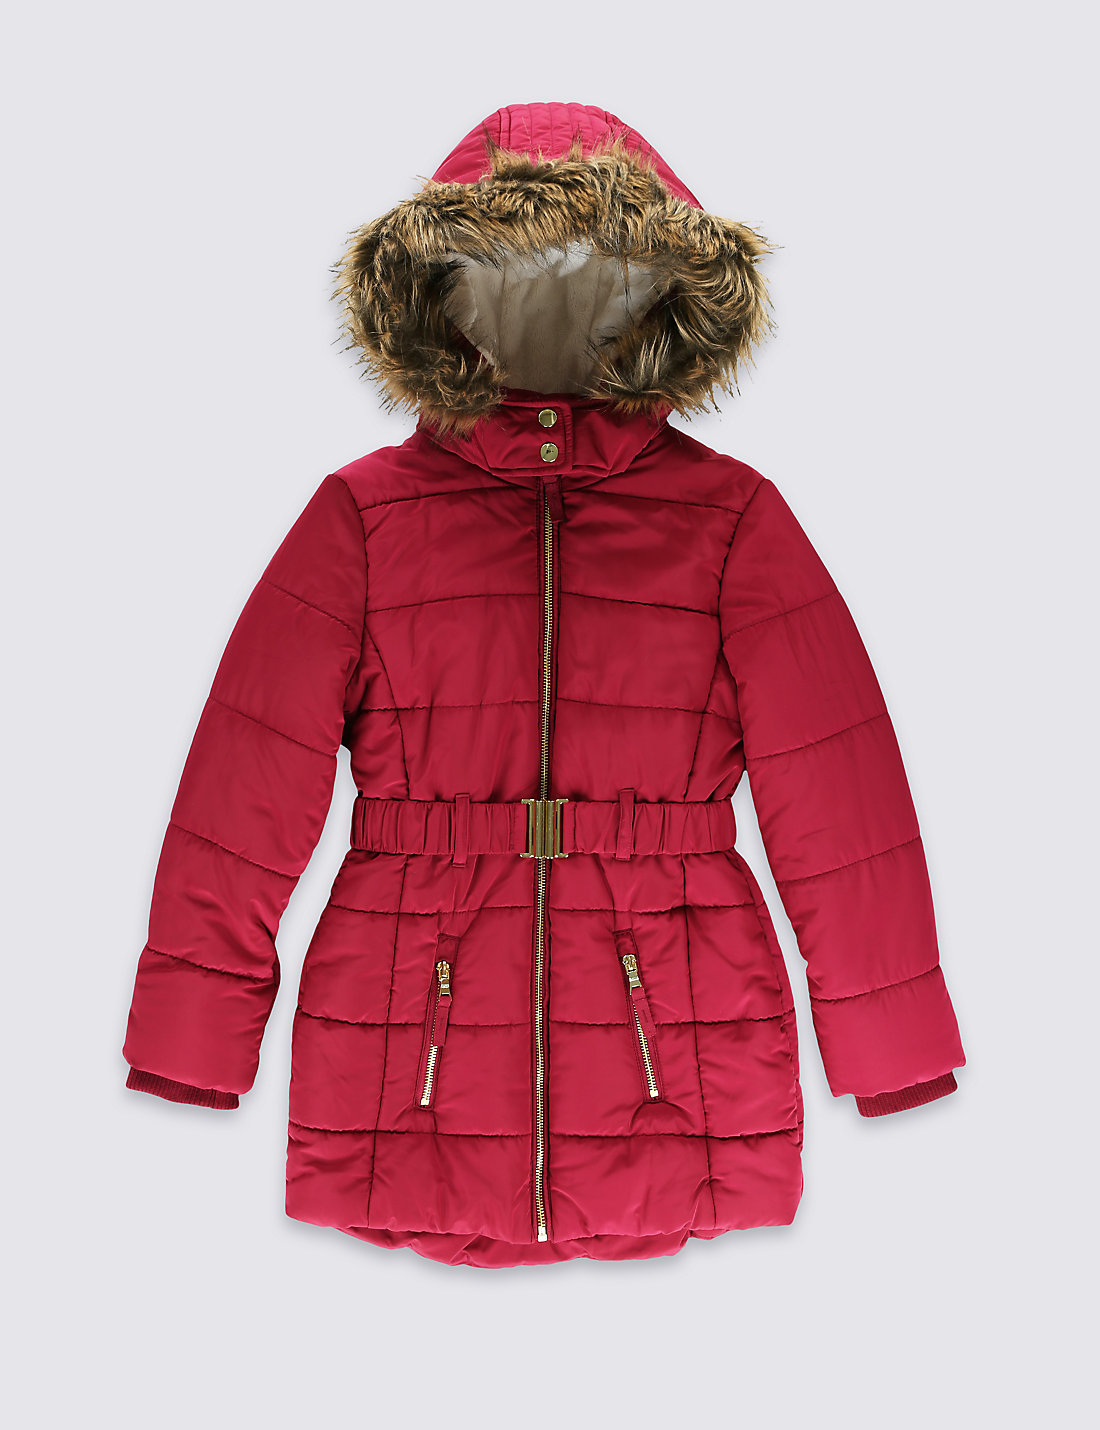 Girls' School Coats & Jackets | Coats & Jackets for Girls | M&S